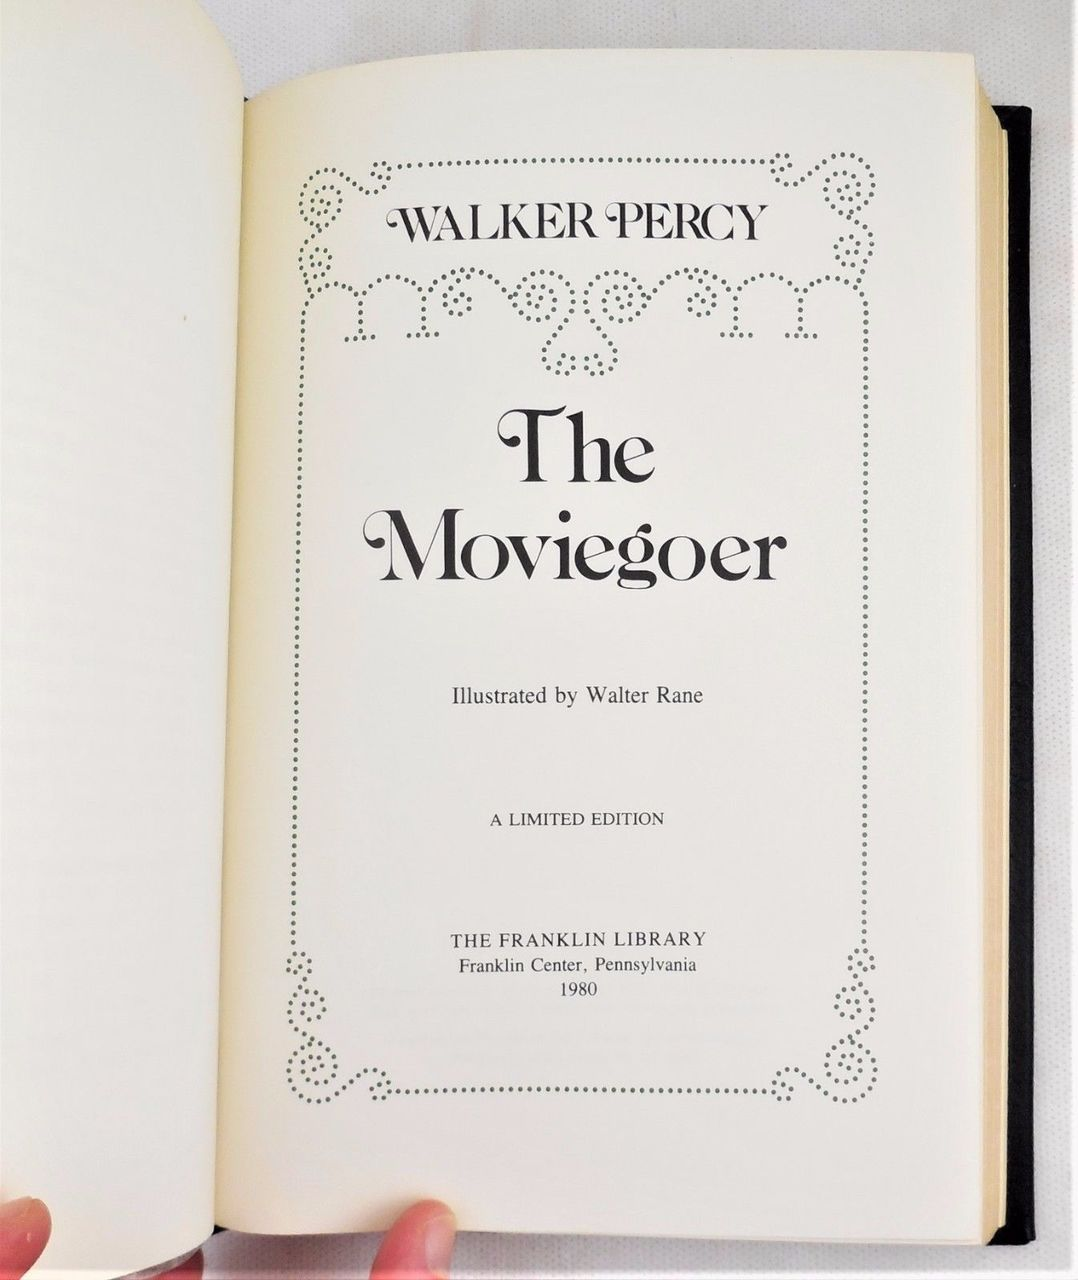 THE MOVIEGOER, by Walker Percy - 1980 [Signed, Ltd Ed]